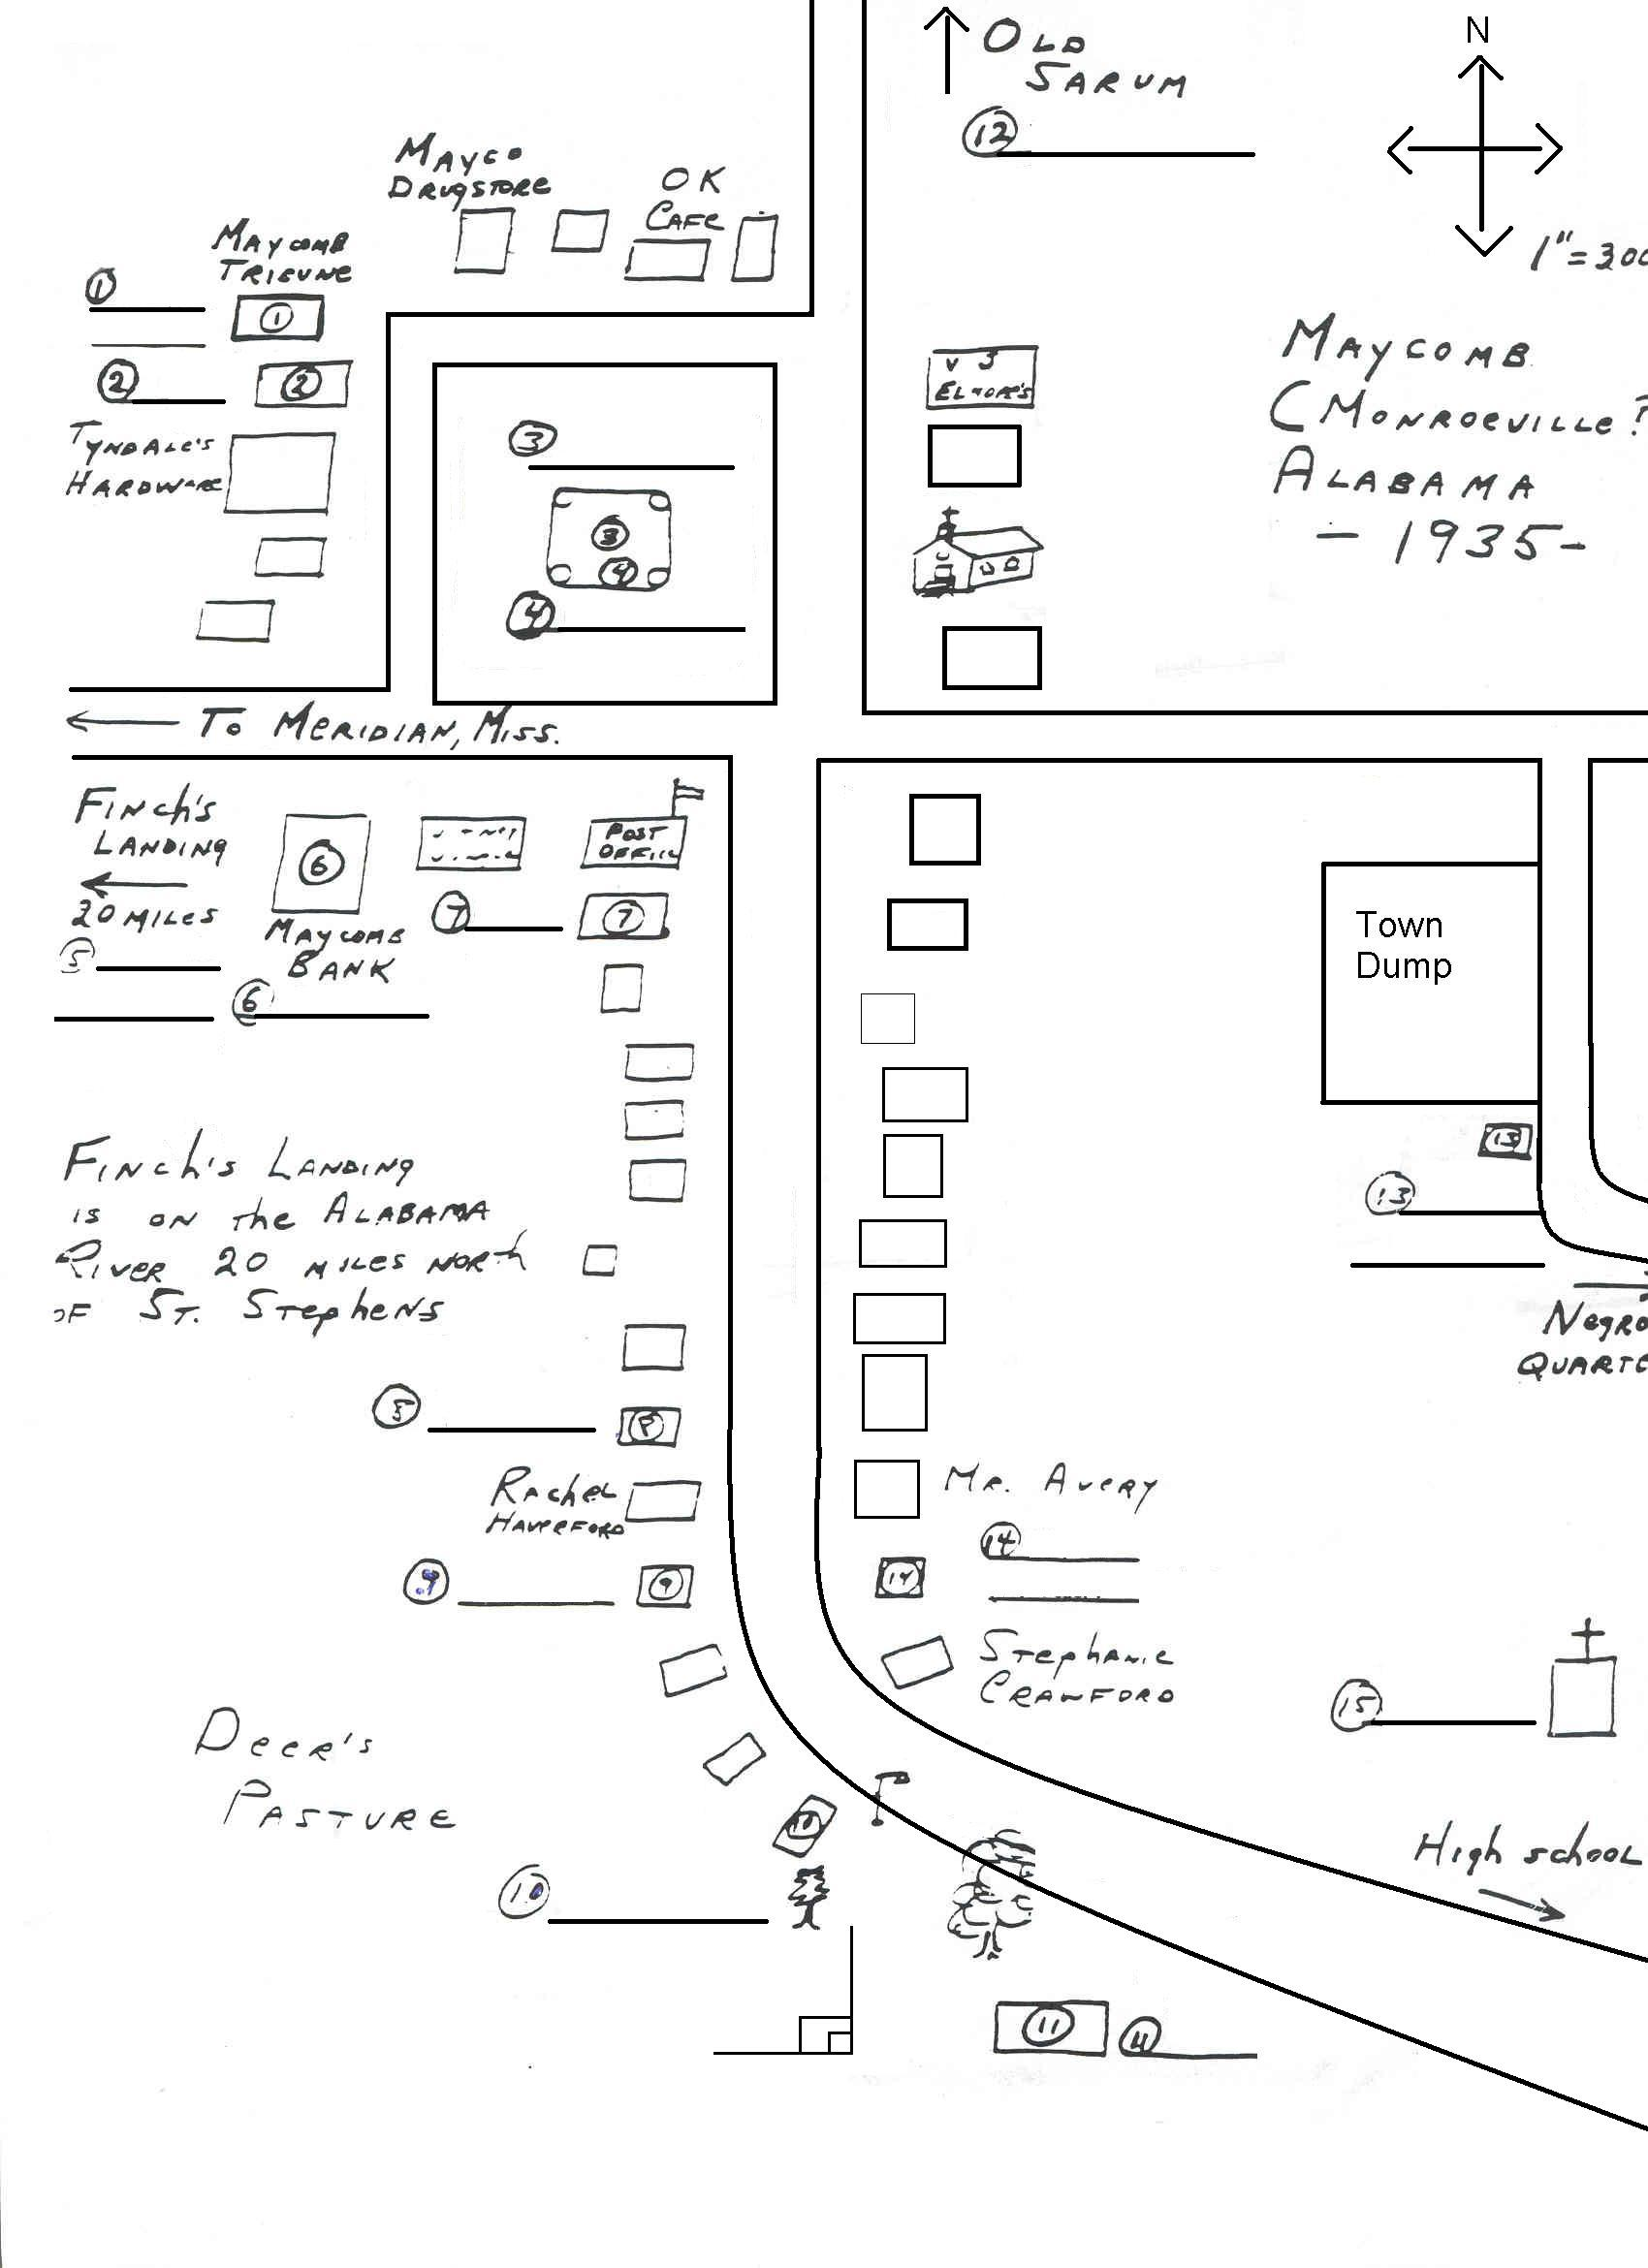 Awesome To Kill A Mockingbird Map Of Maycomb Galleries - Printable ...